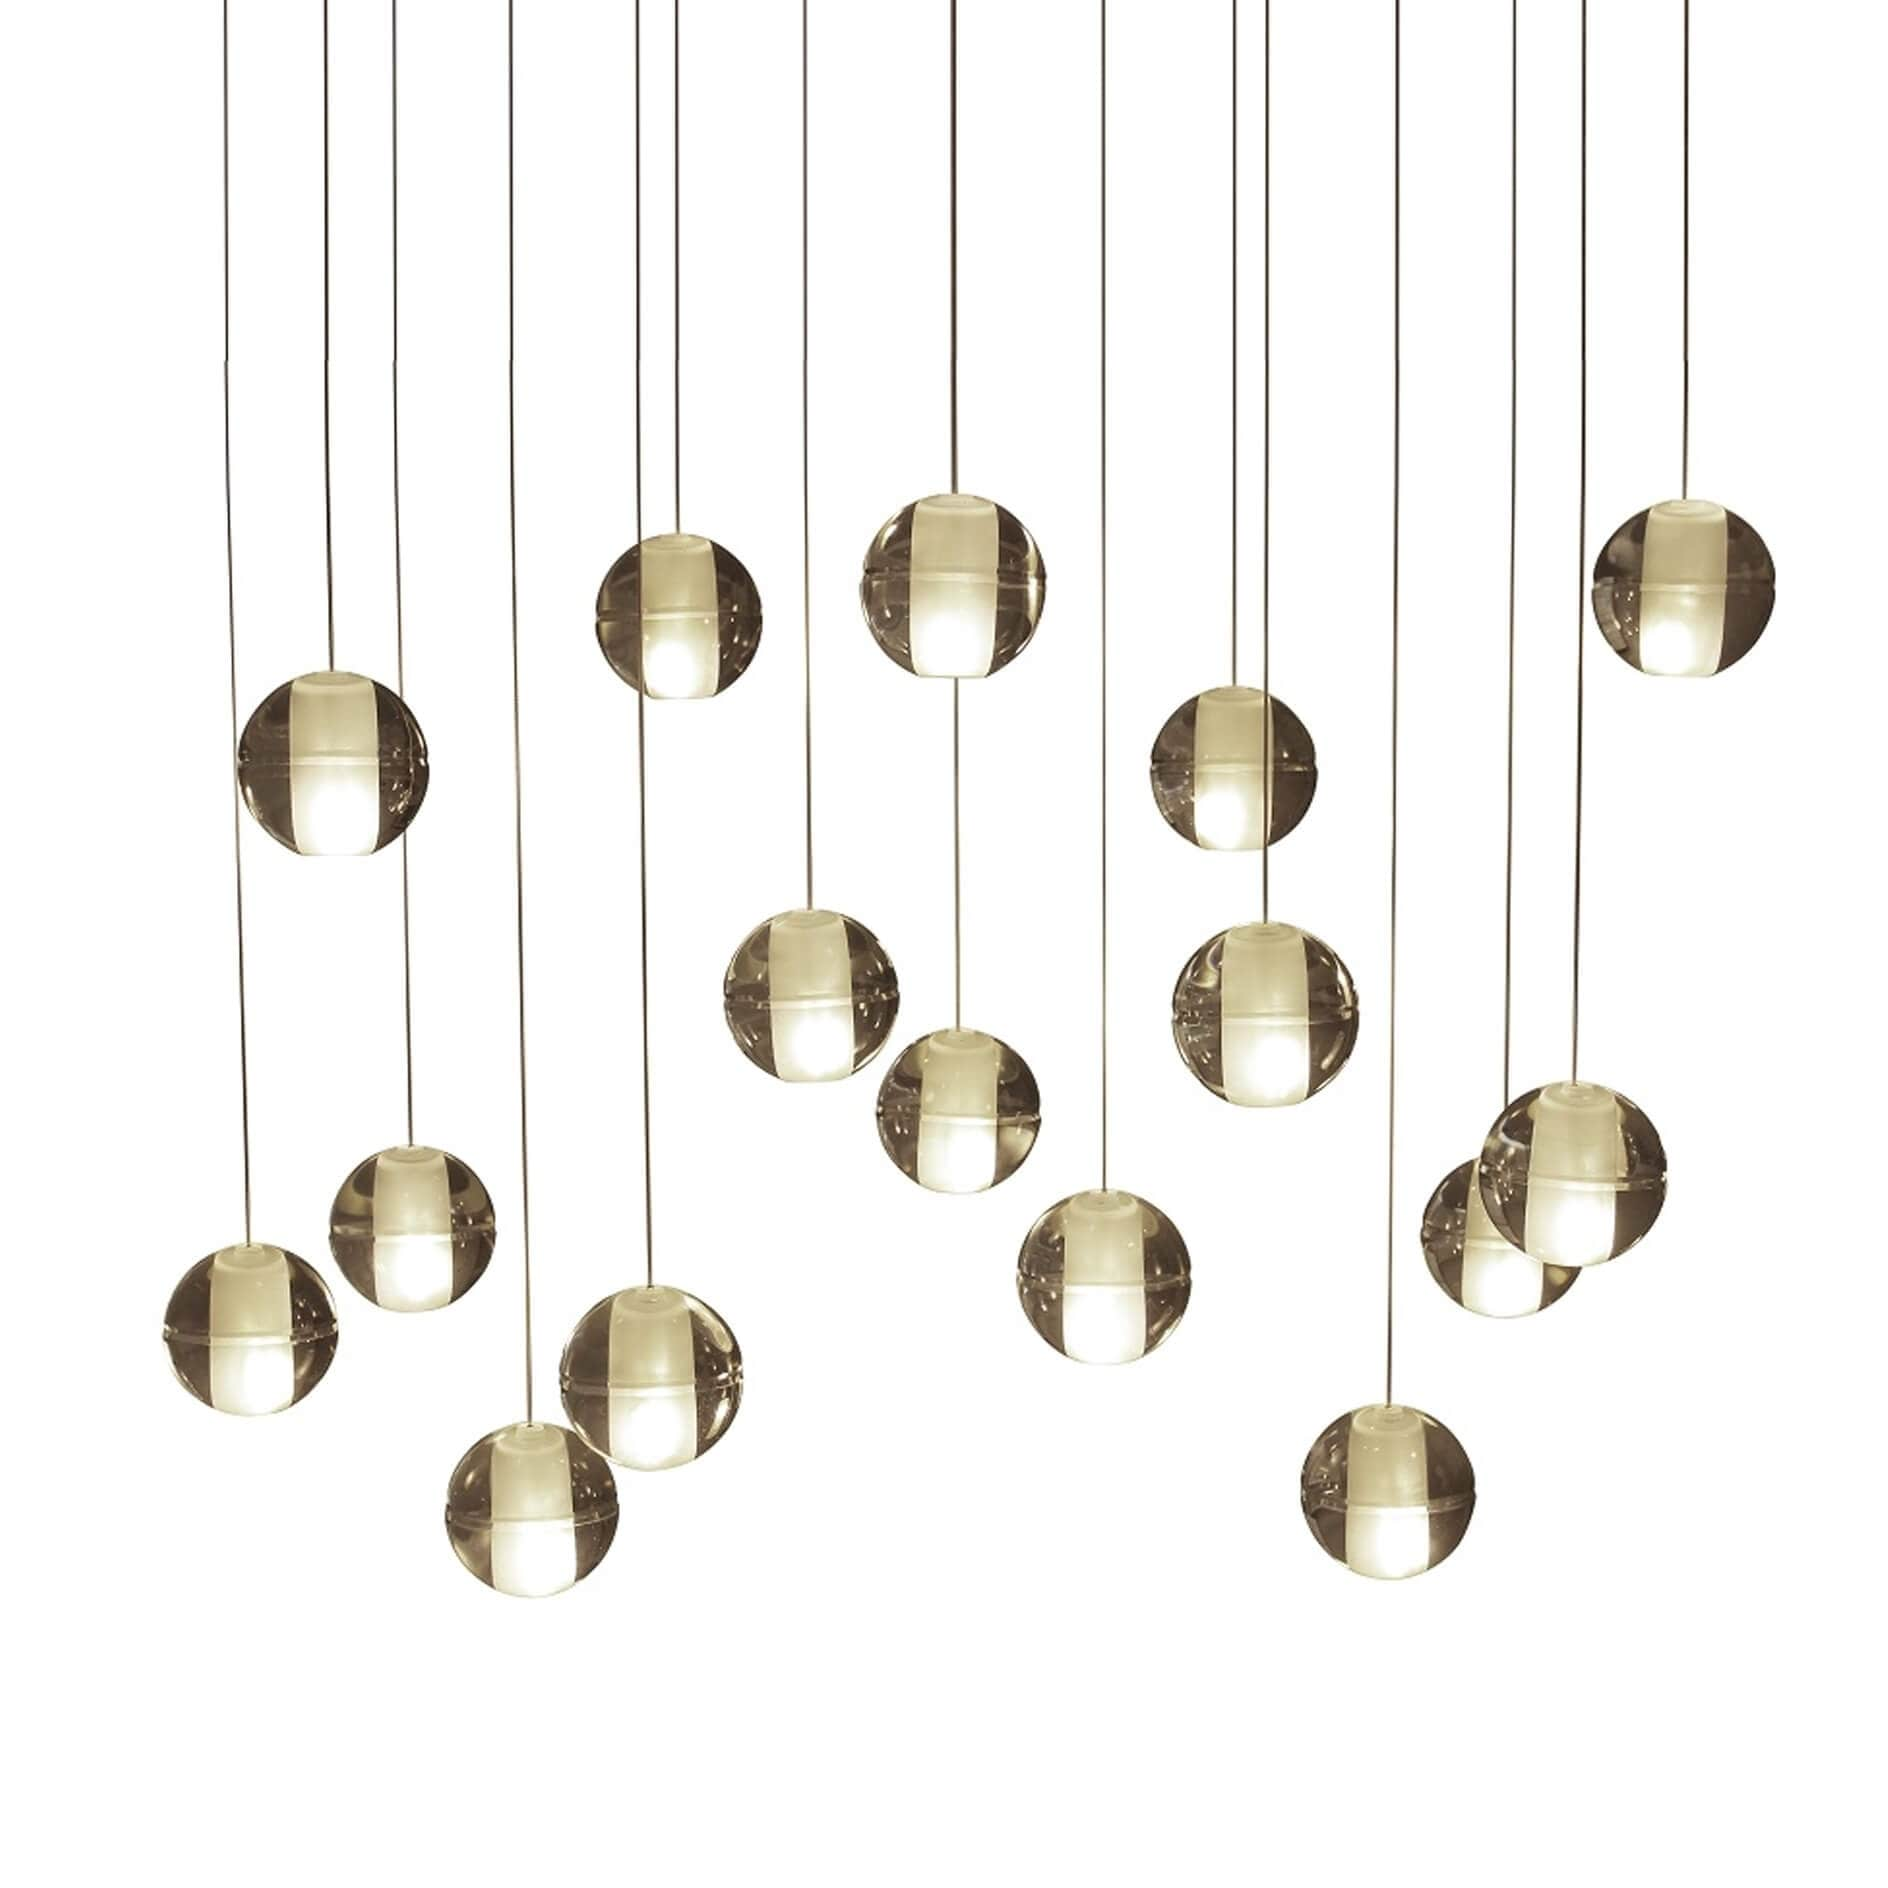 Orion 16 Light Rectangular Floating Glass Globe Led Chandelier Brass On Sale Overstock 24218328